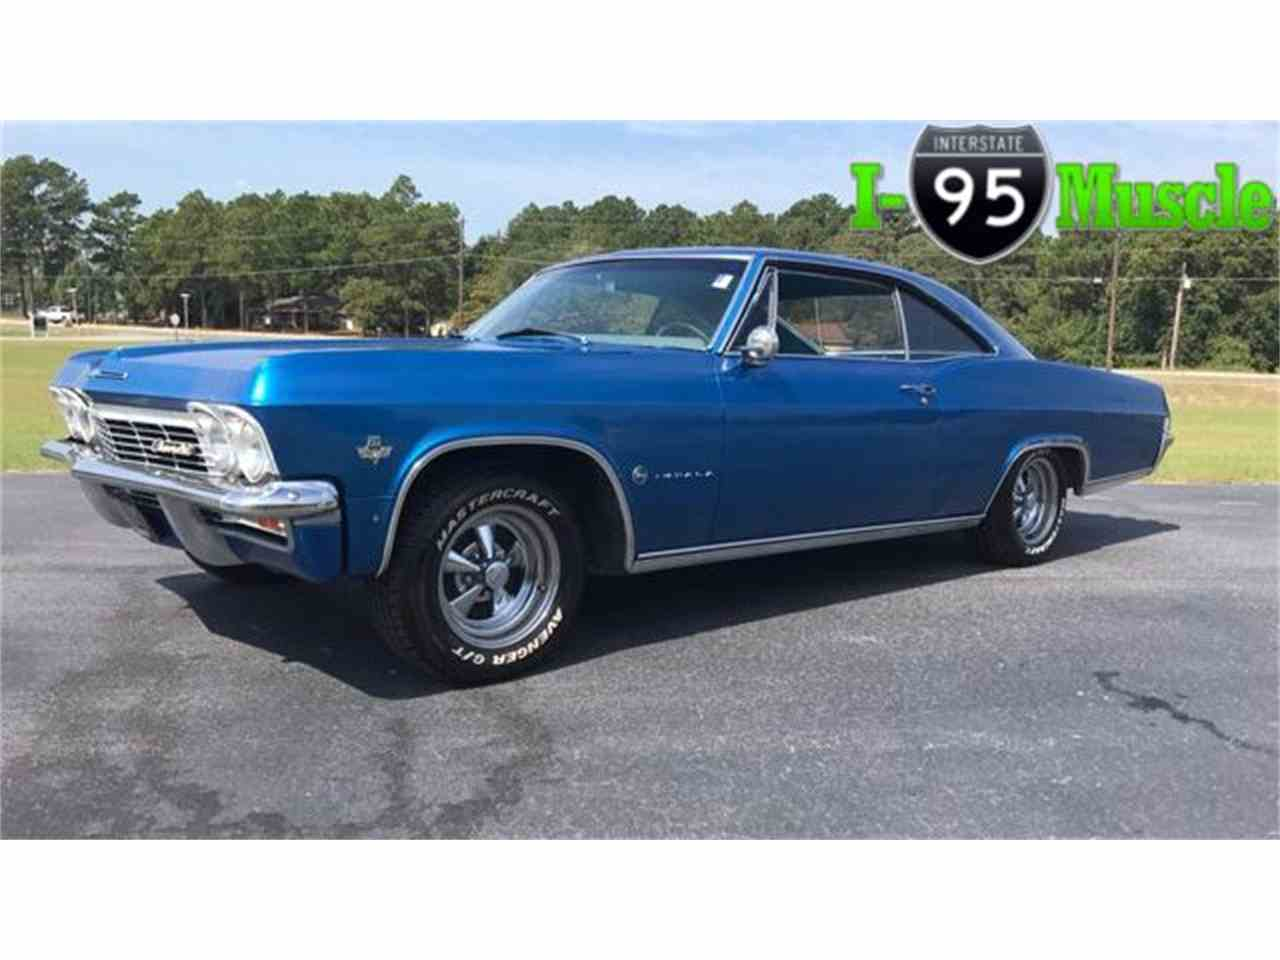 Large Picture of '65 Chevrolet Impala located in North Carolina - $15,495.00 - MBYX